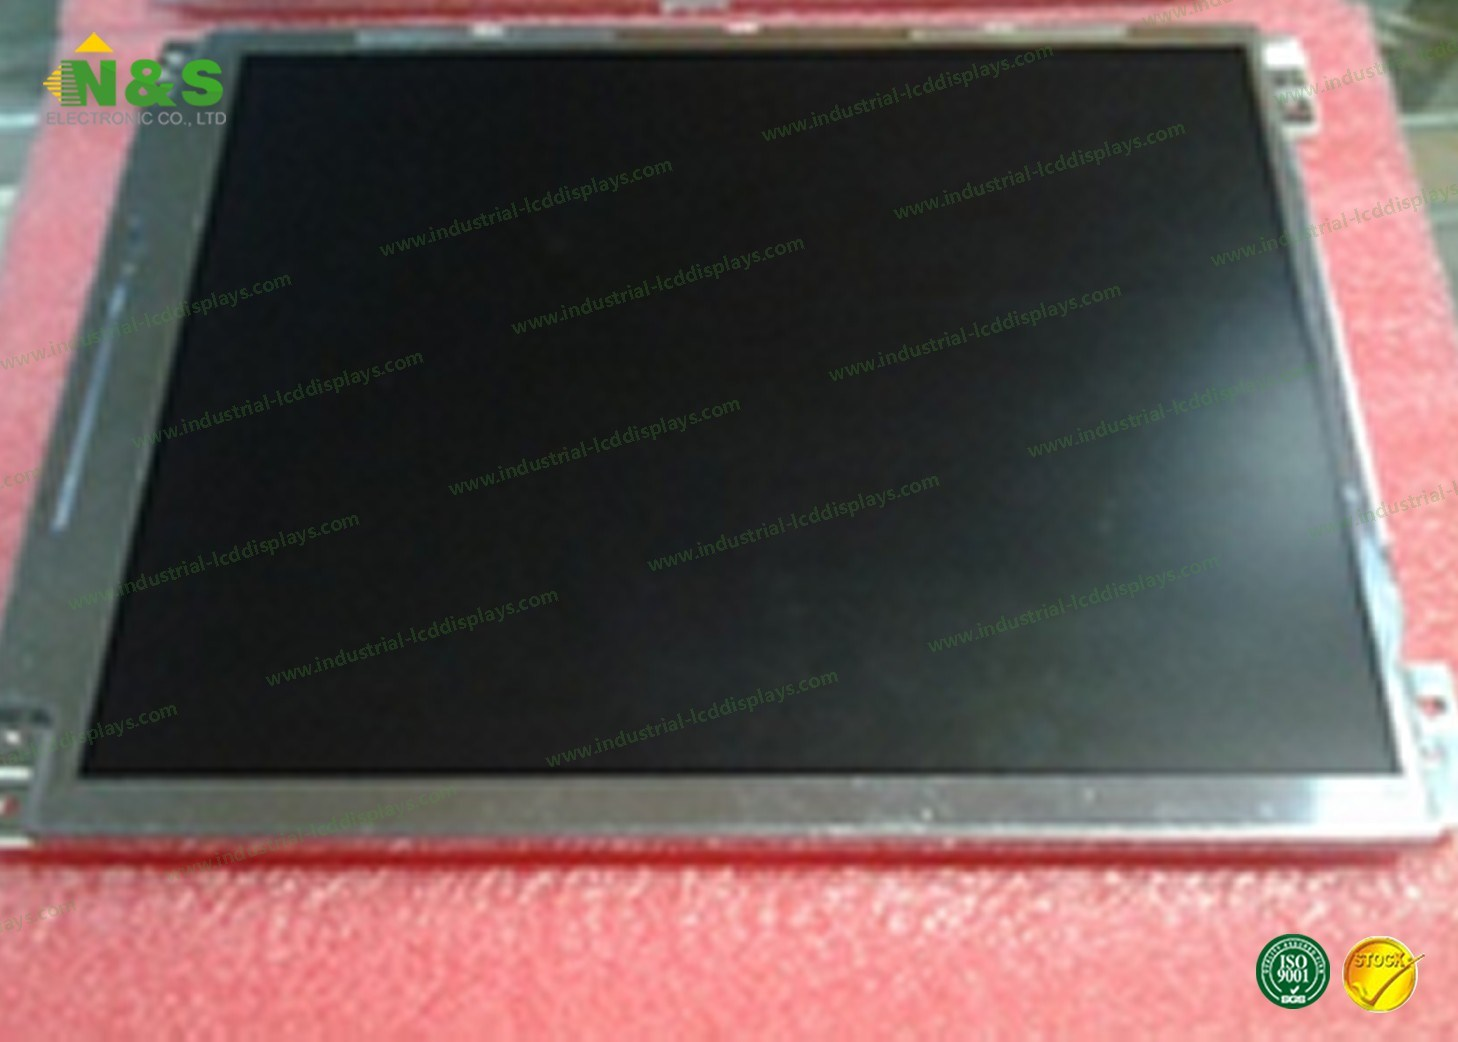 Nl8060bc26-35c 10.4 Inch LCD Display Panel